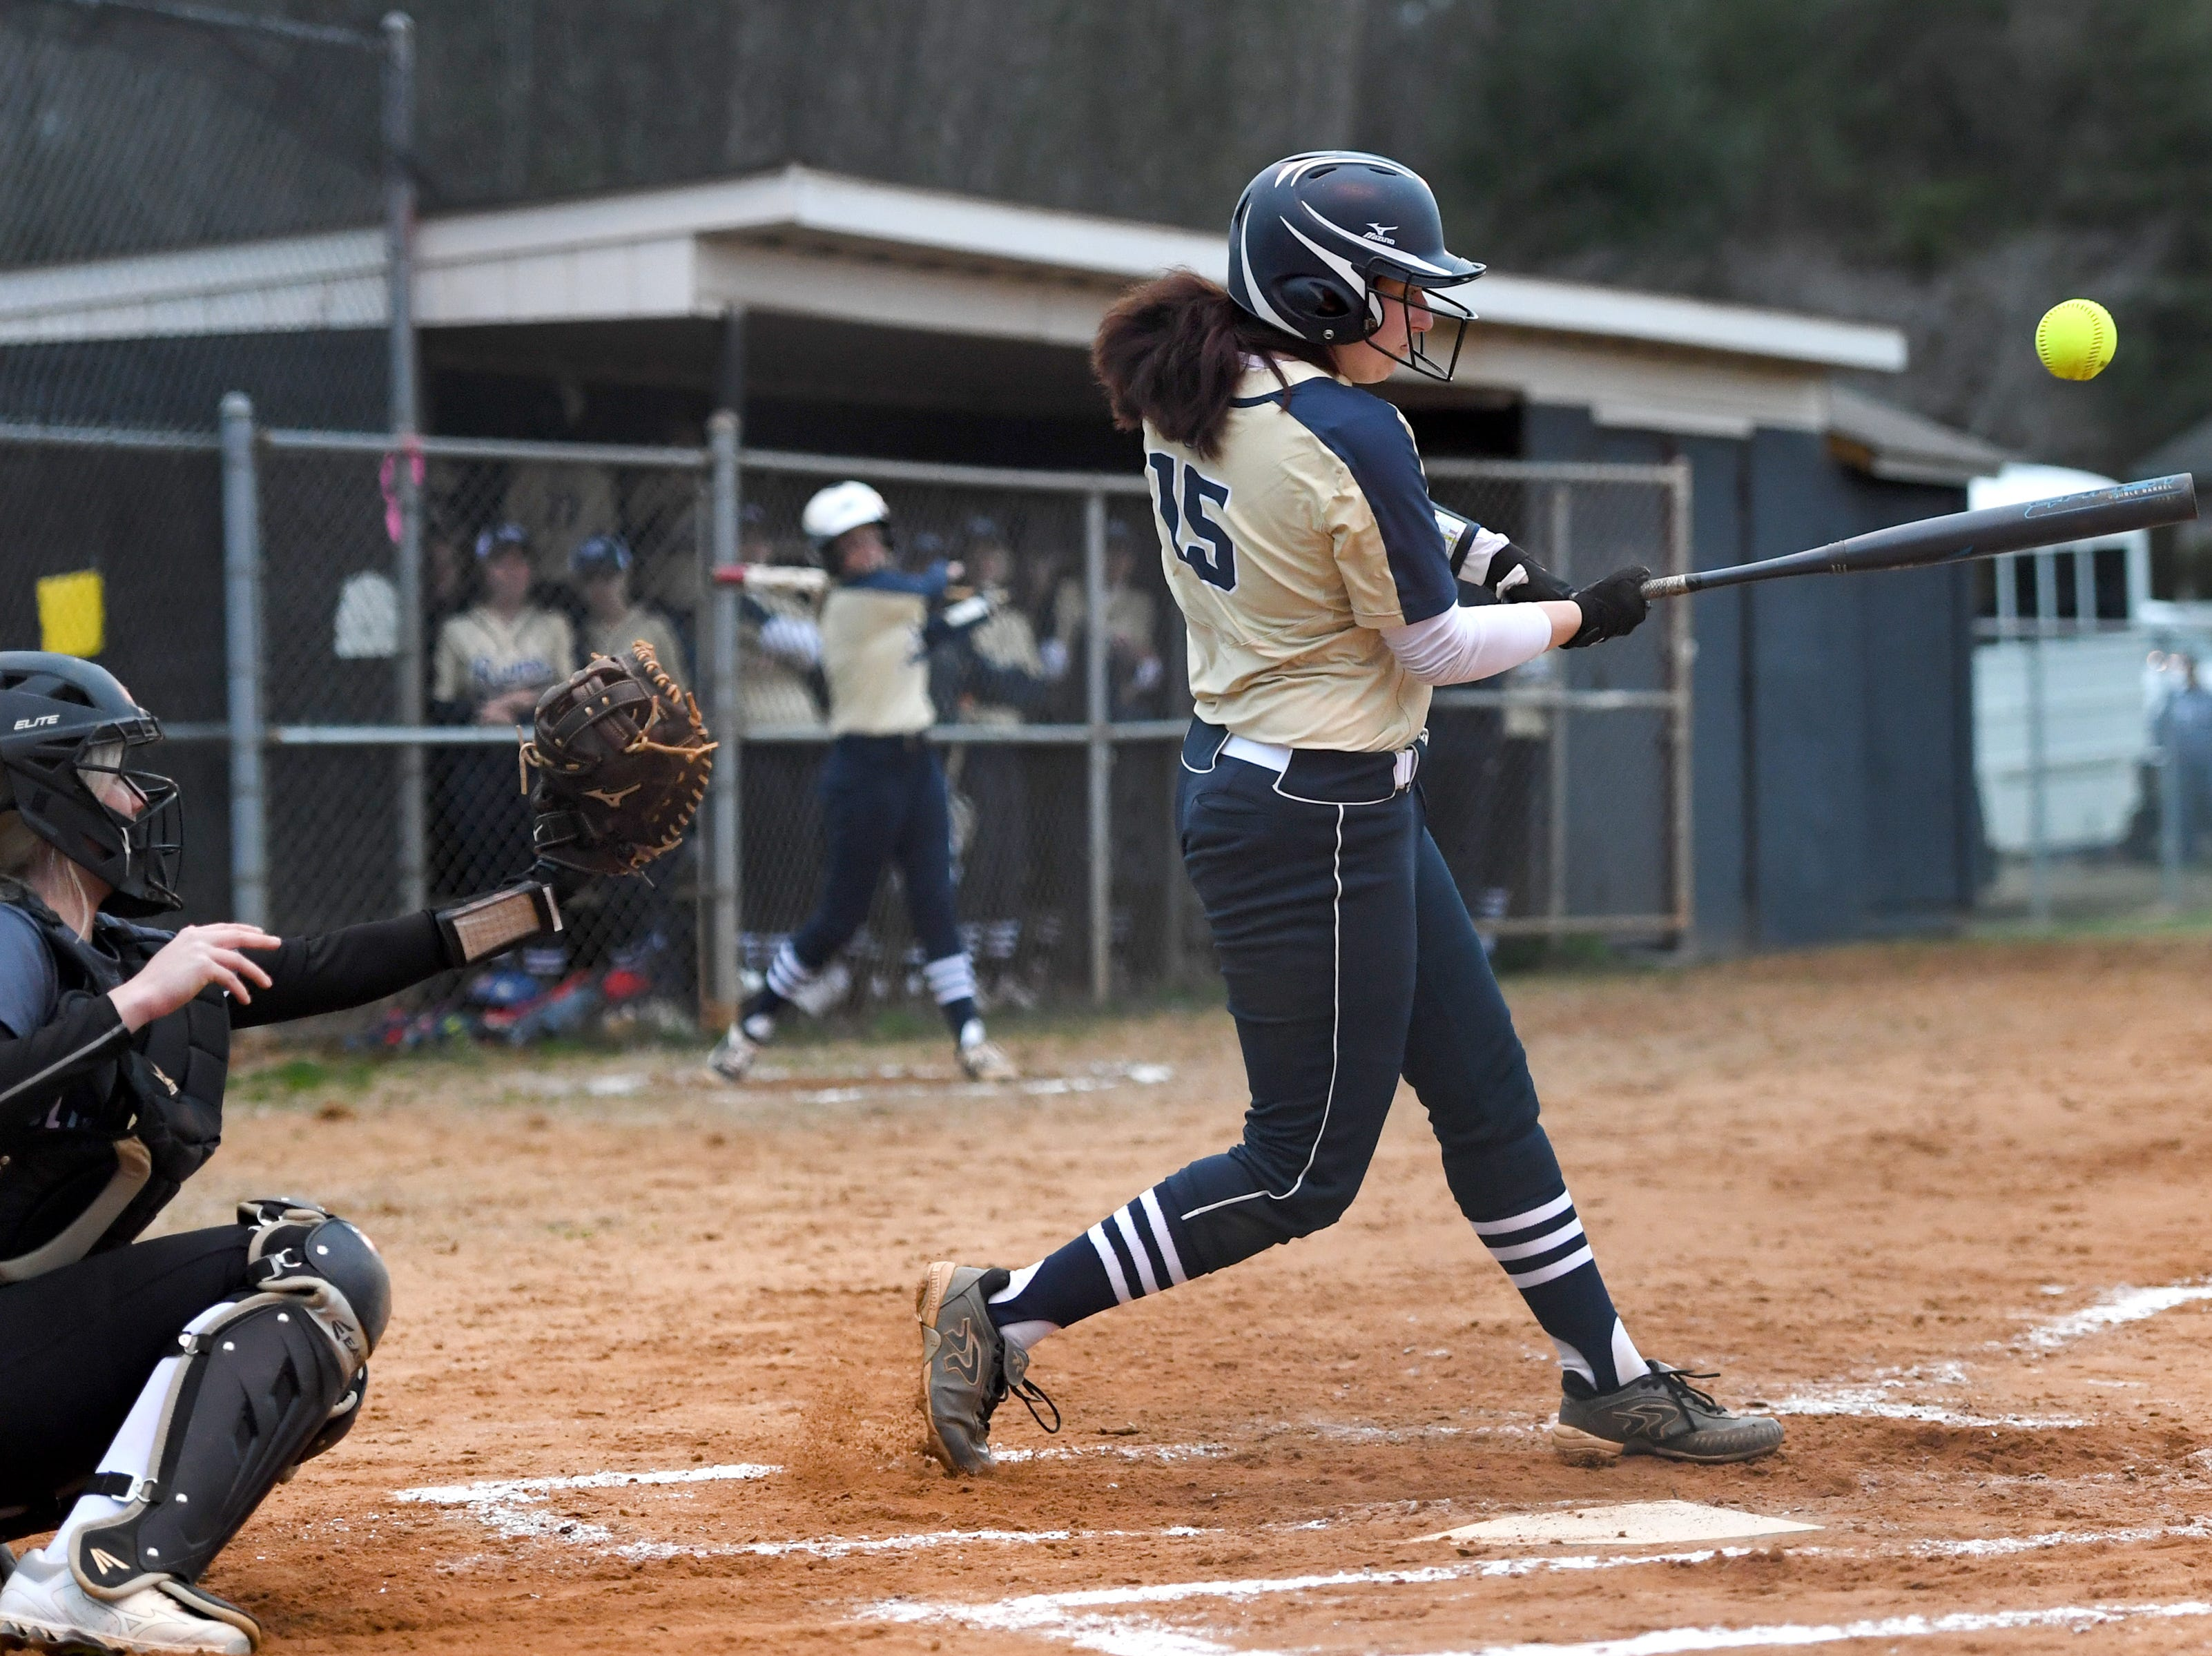 Roberson's Alexis Pike hits the ball against North Buncombe during their game at North Buncombe High School on March 7, 2019. North Buncombe defeated Roberson 3-1.